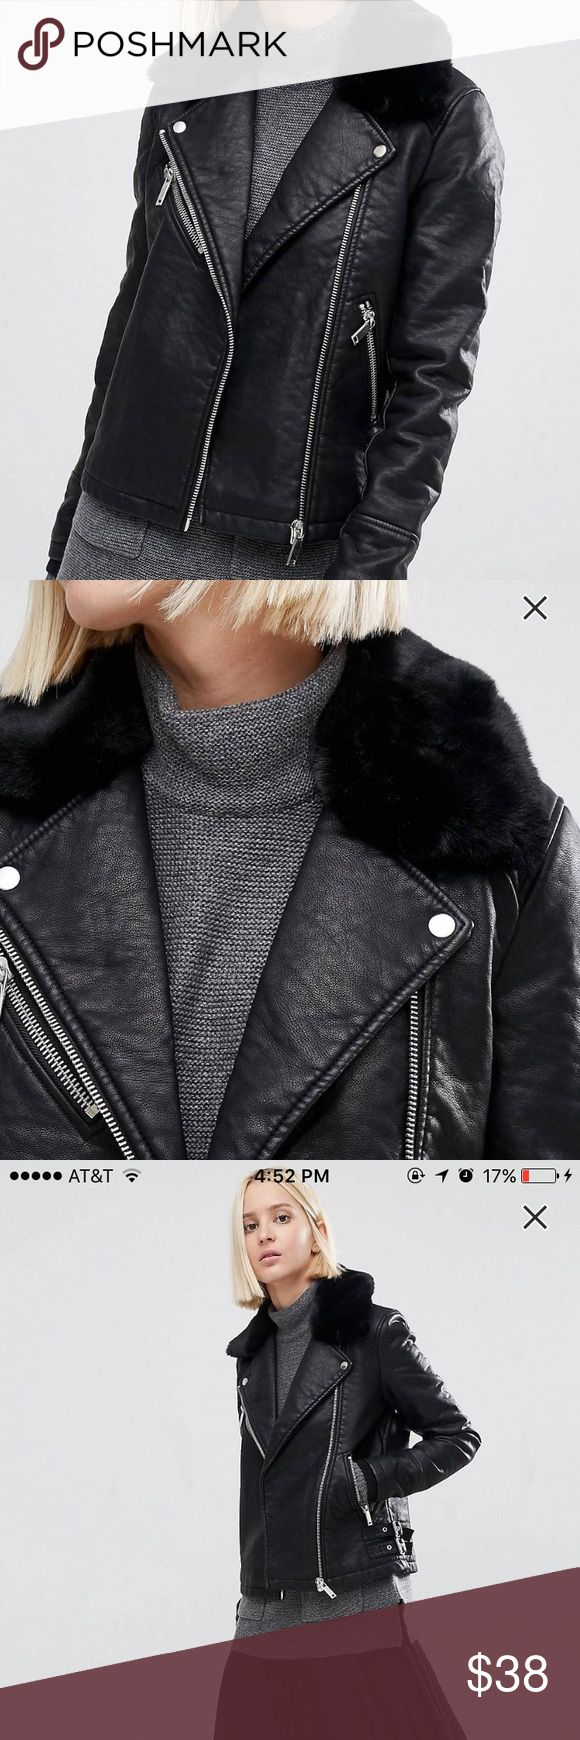 ASOS Leather Jacket with Faux Fur lining ASOS Leather Jacket with Faux Fur lining, never worn, tags off. bought for $60!! Size US 4 but honestly fit like a US 0, would recommend to a size 0 or a small 2!!! ASOS Jackets & Coats